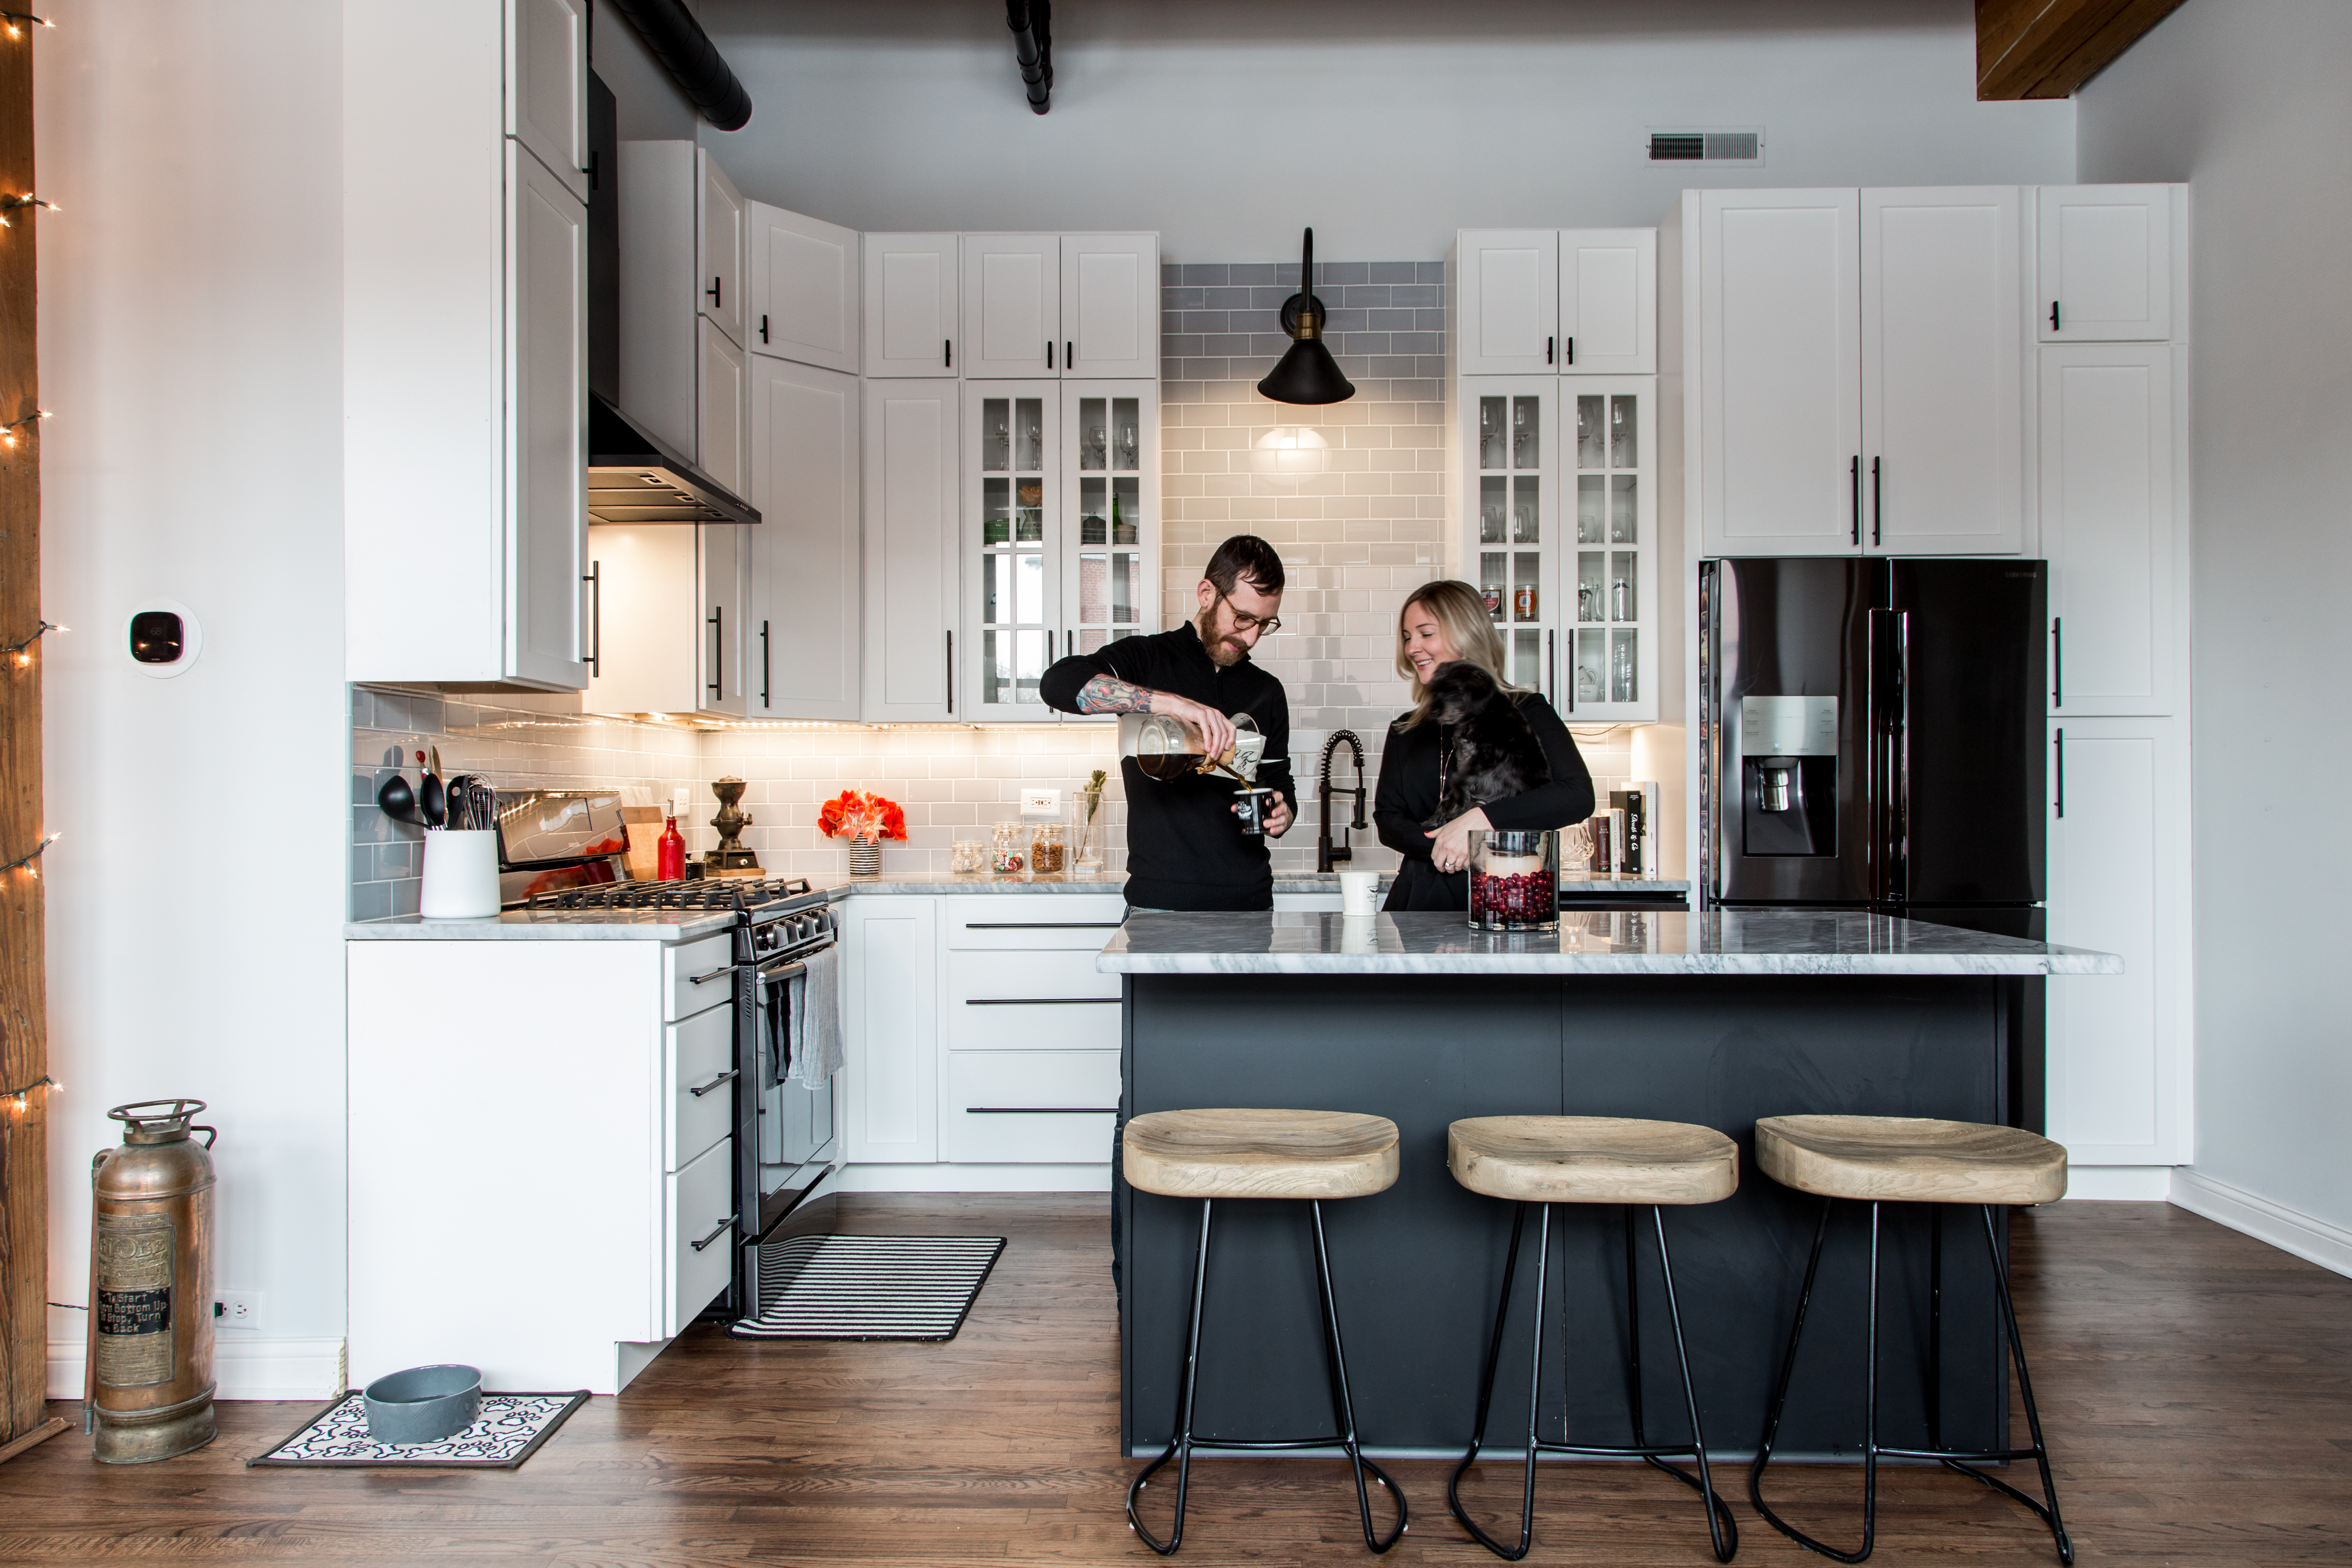 Kitchen Trends For 2020.Kitchen Cabinet Trends For 2020 Kitchn